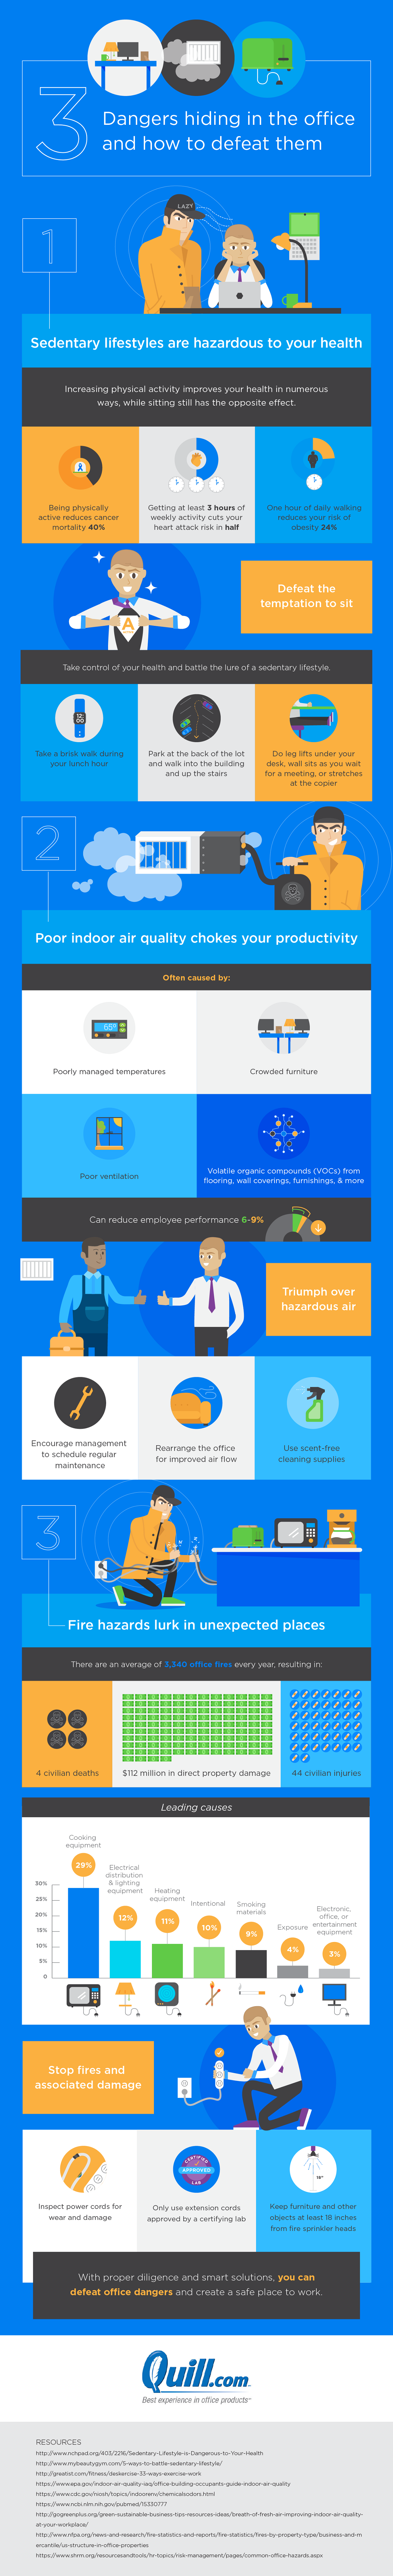 3 Dangers hiding in the office and how to defeat them #infographic